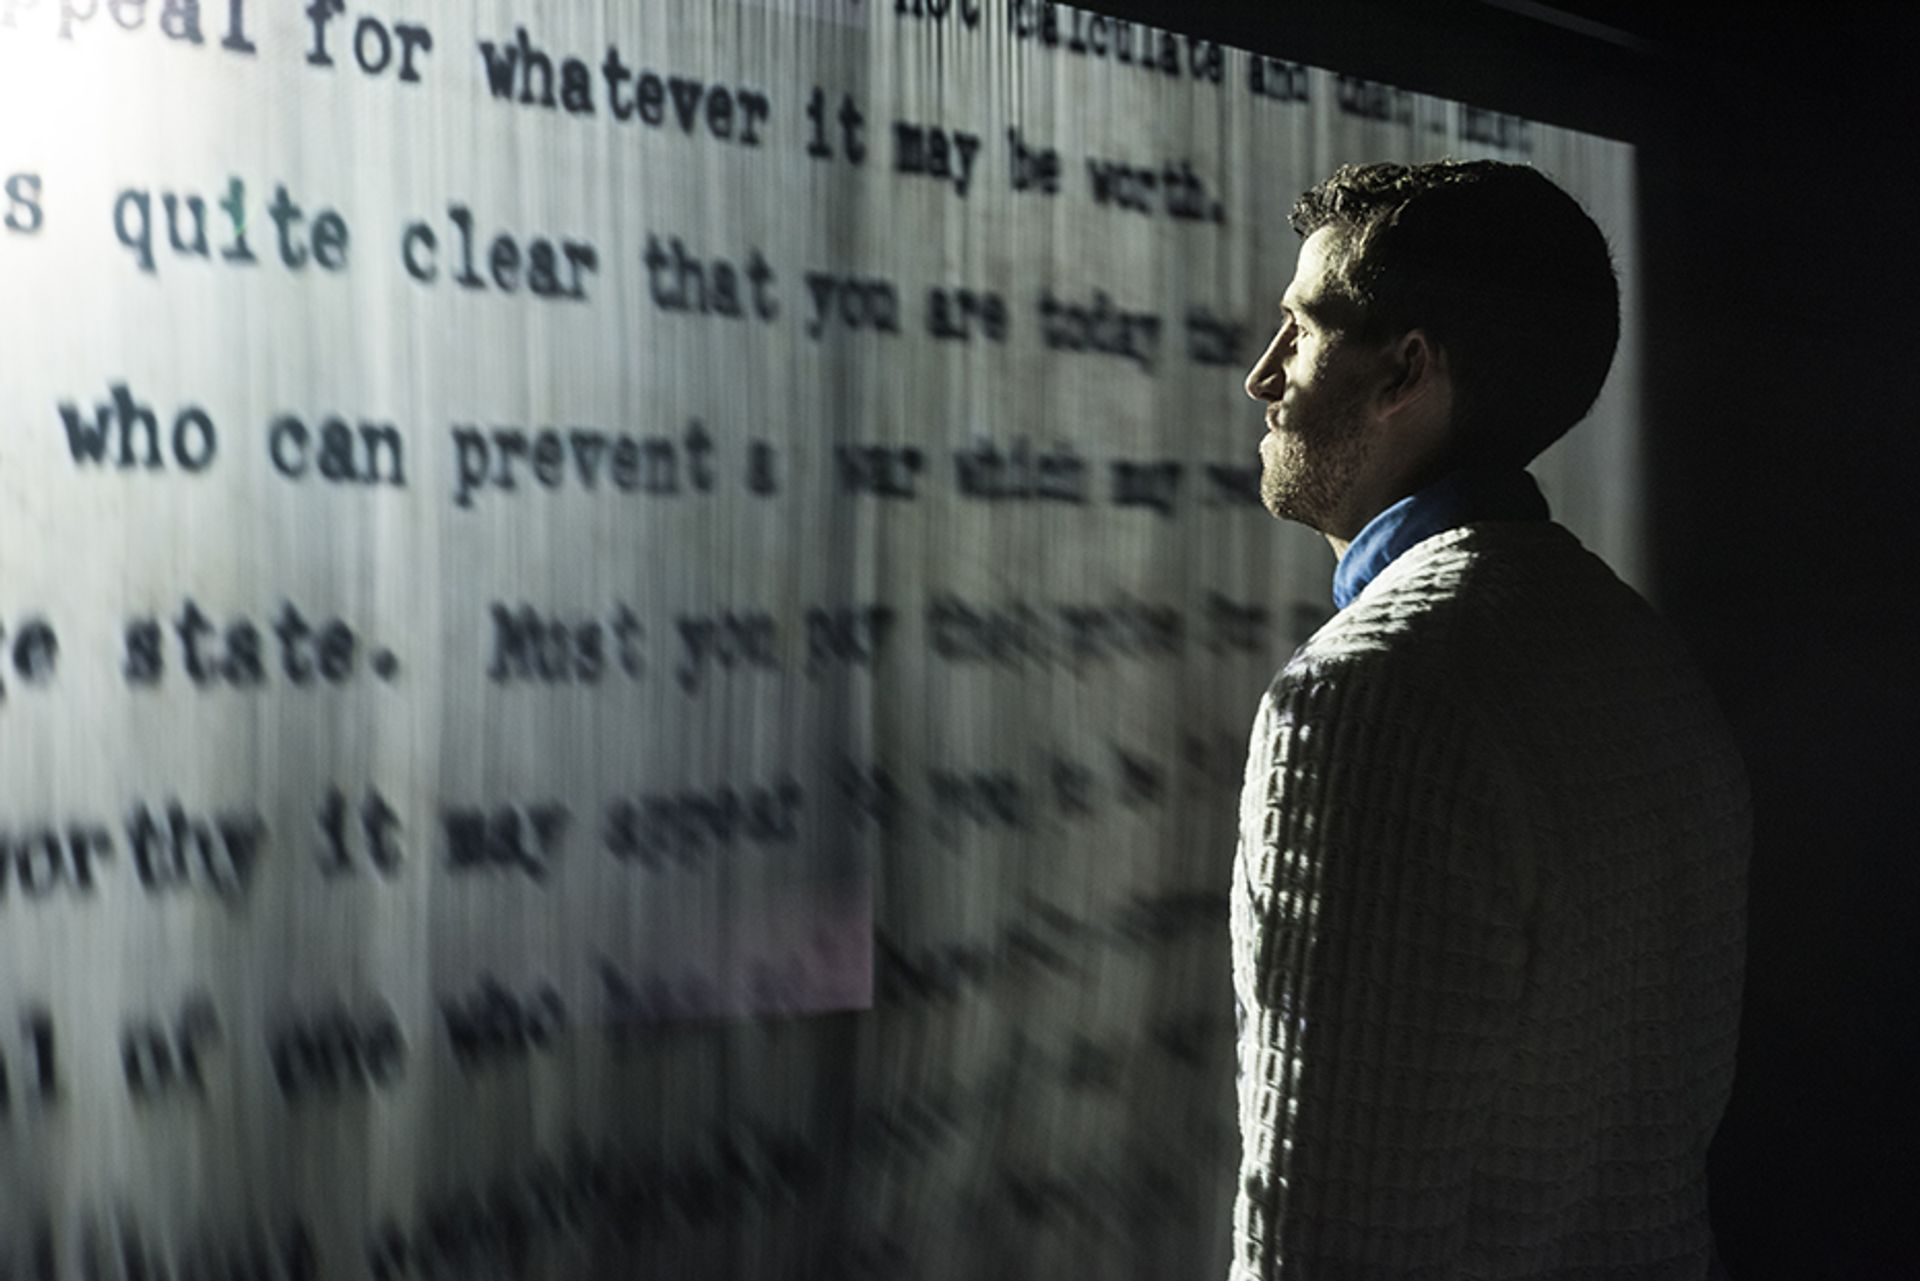 Jitish Kallat's Covering Letter (2012) will appear in India's pavilion Courtesy of artist and Philadelphia Museum of Art